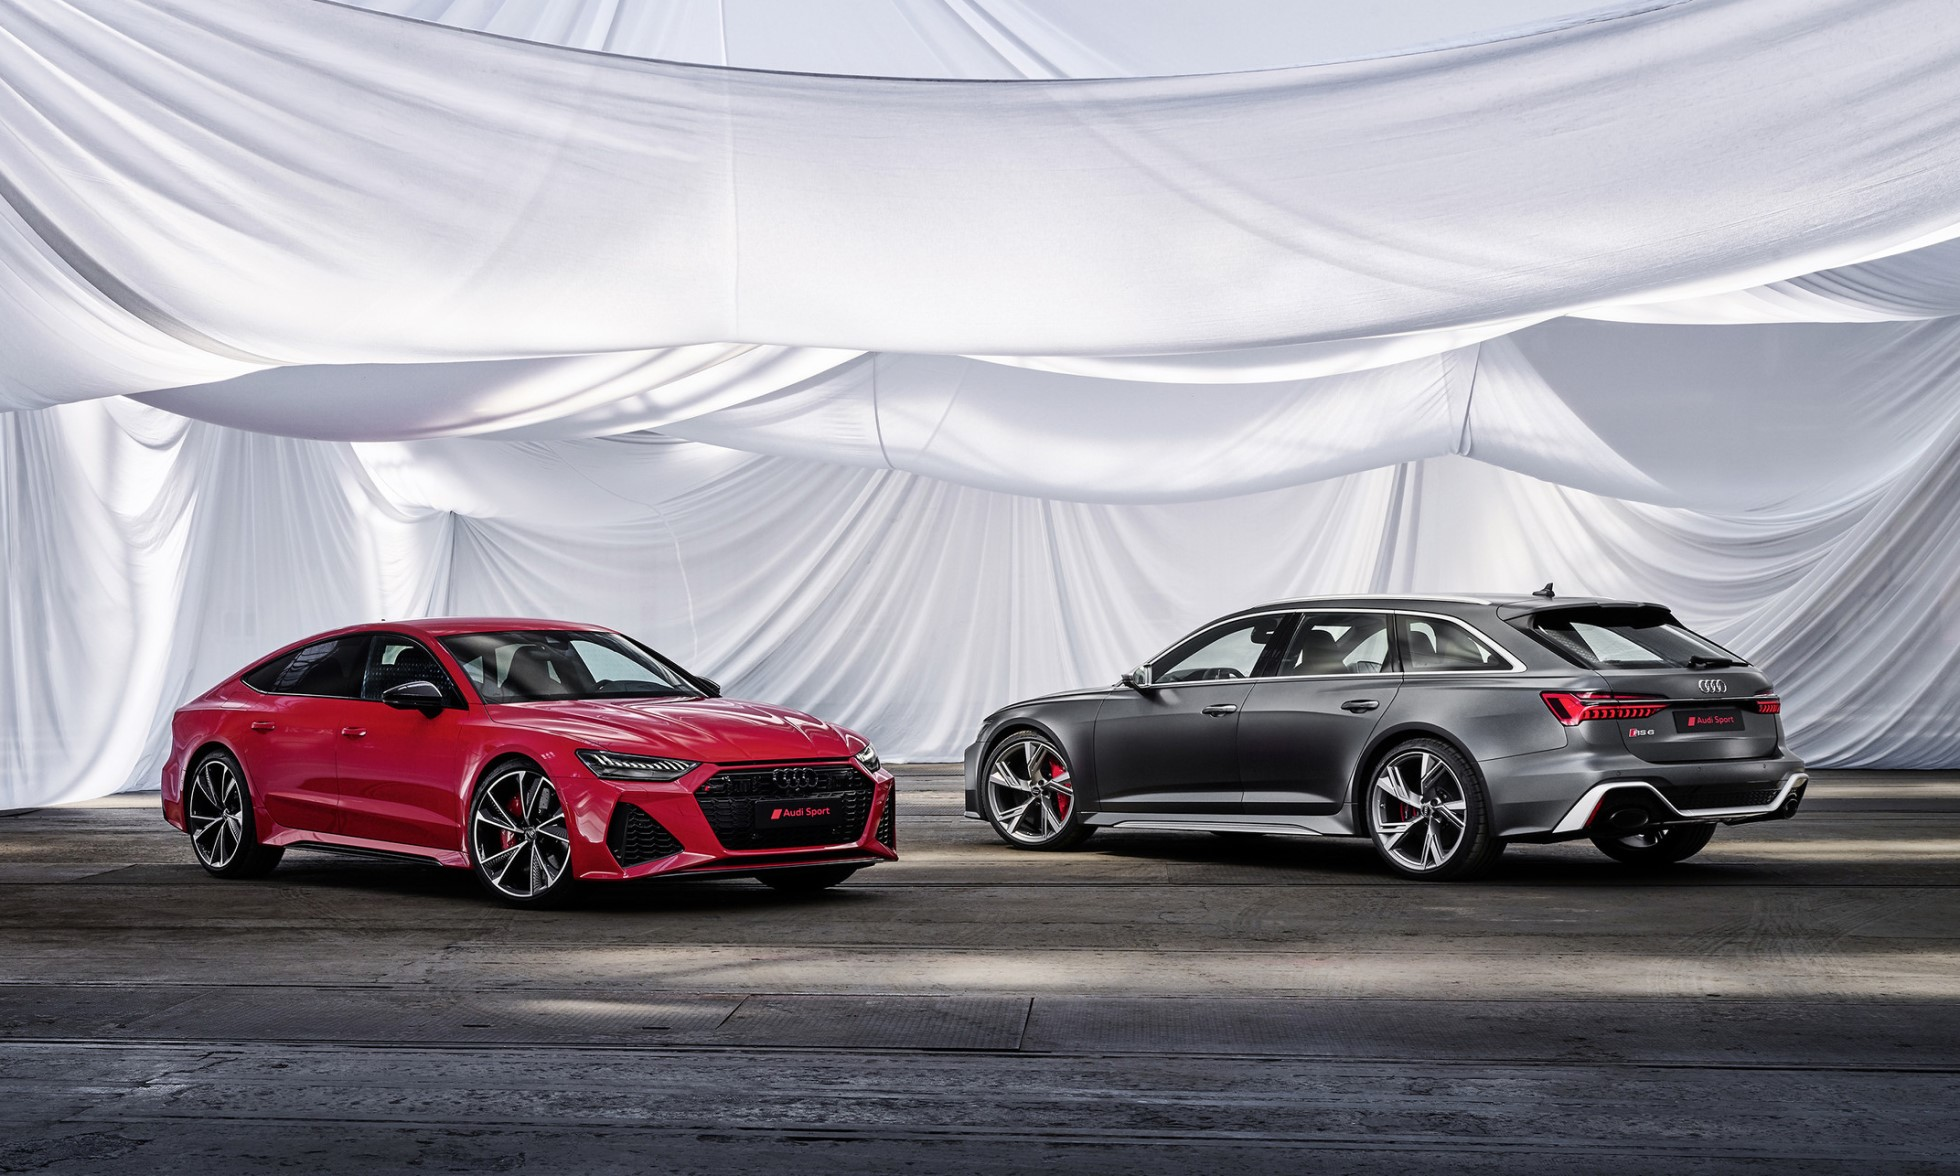 Audi RS6 Avant and RS7 Sportback